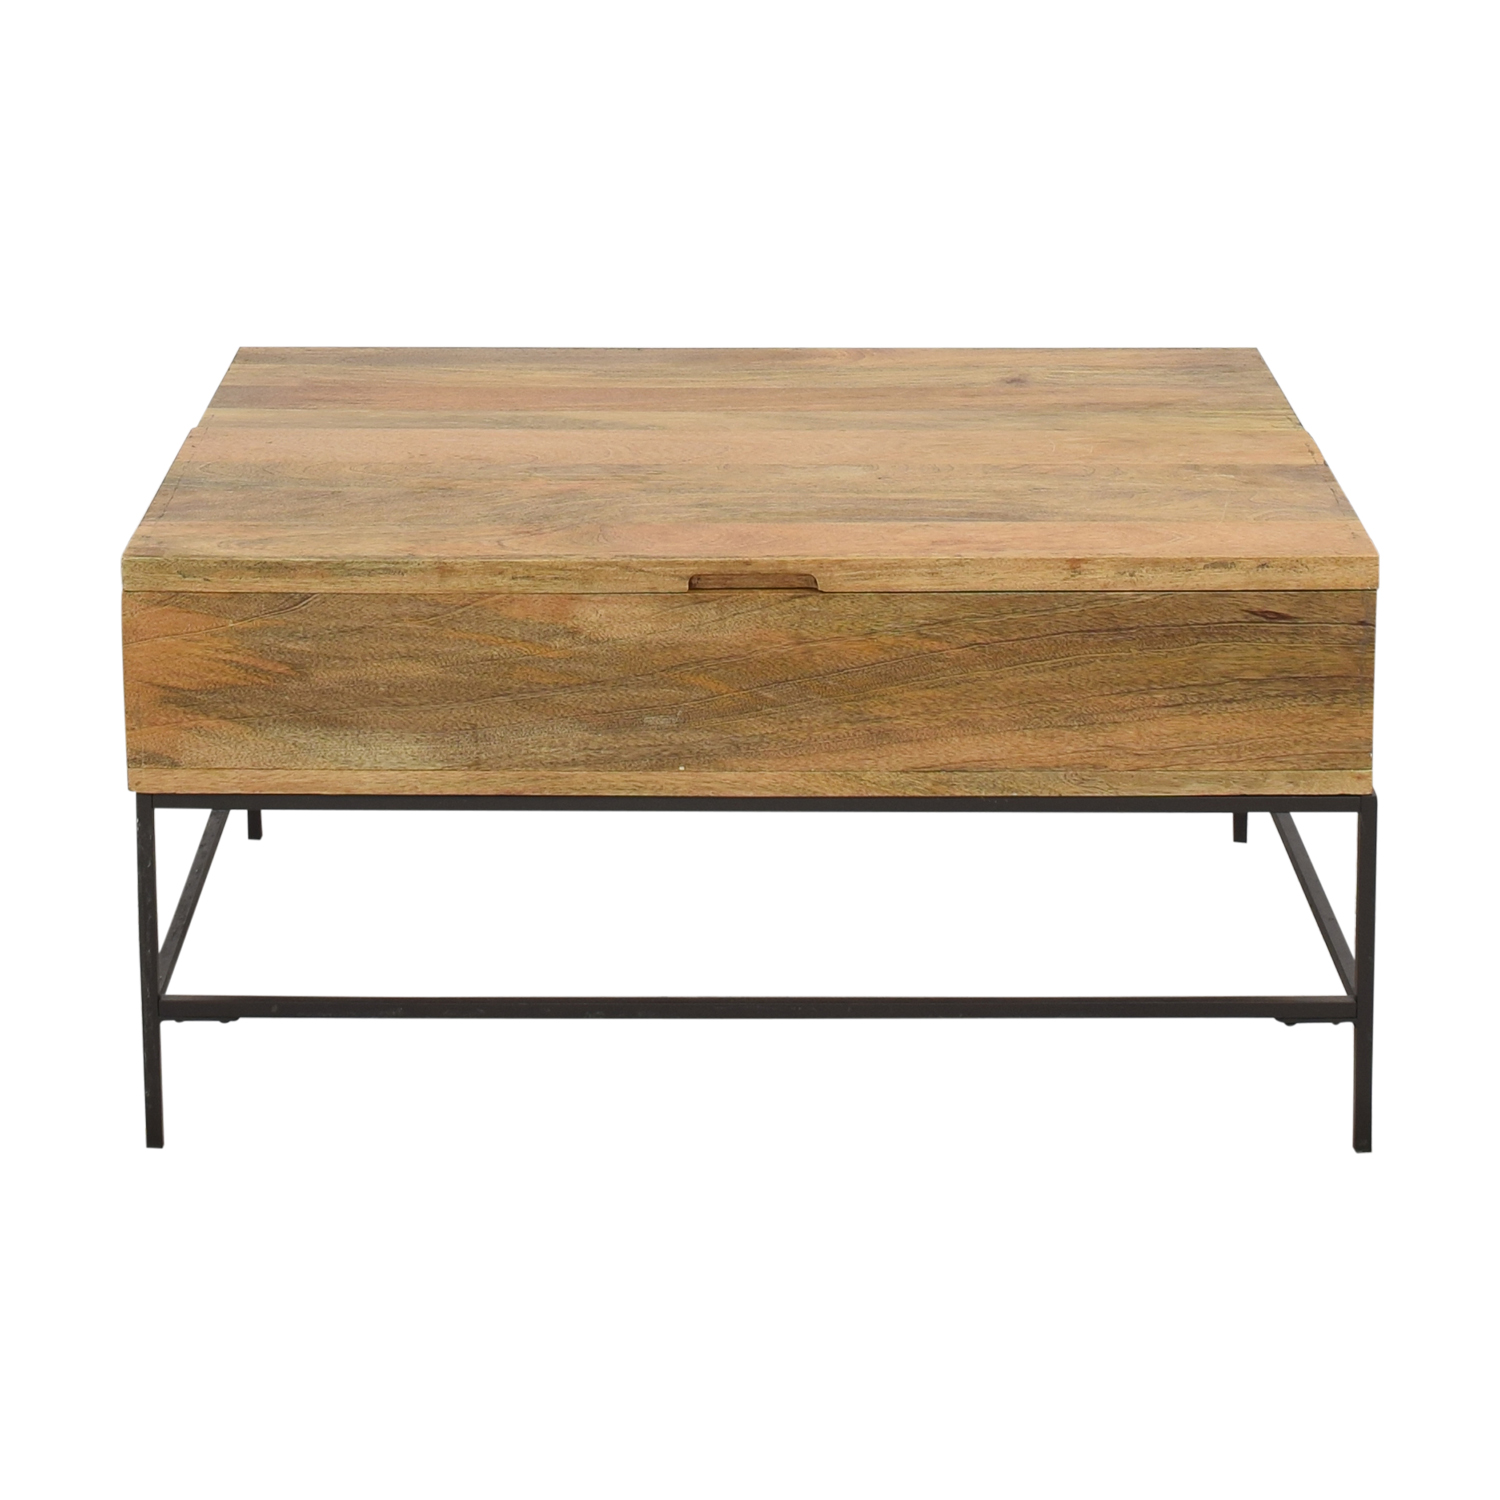 West Elm West Elm Industrial Storage Coffee Table Small on sale